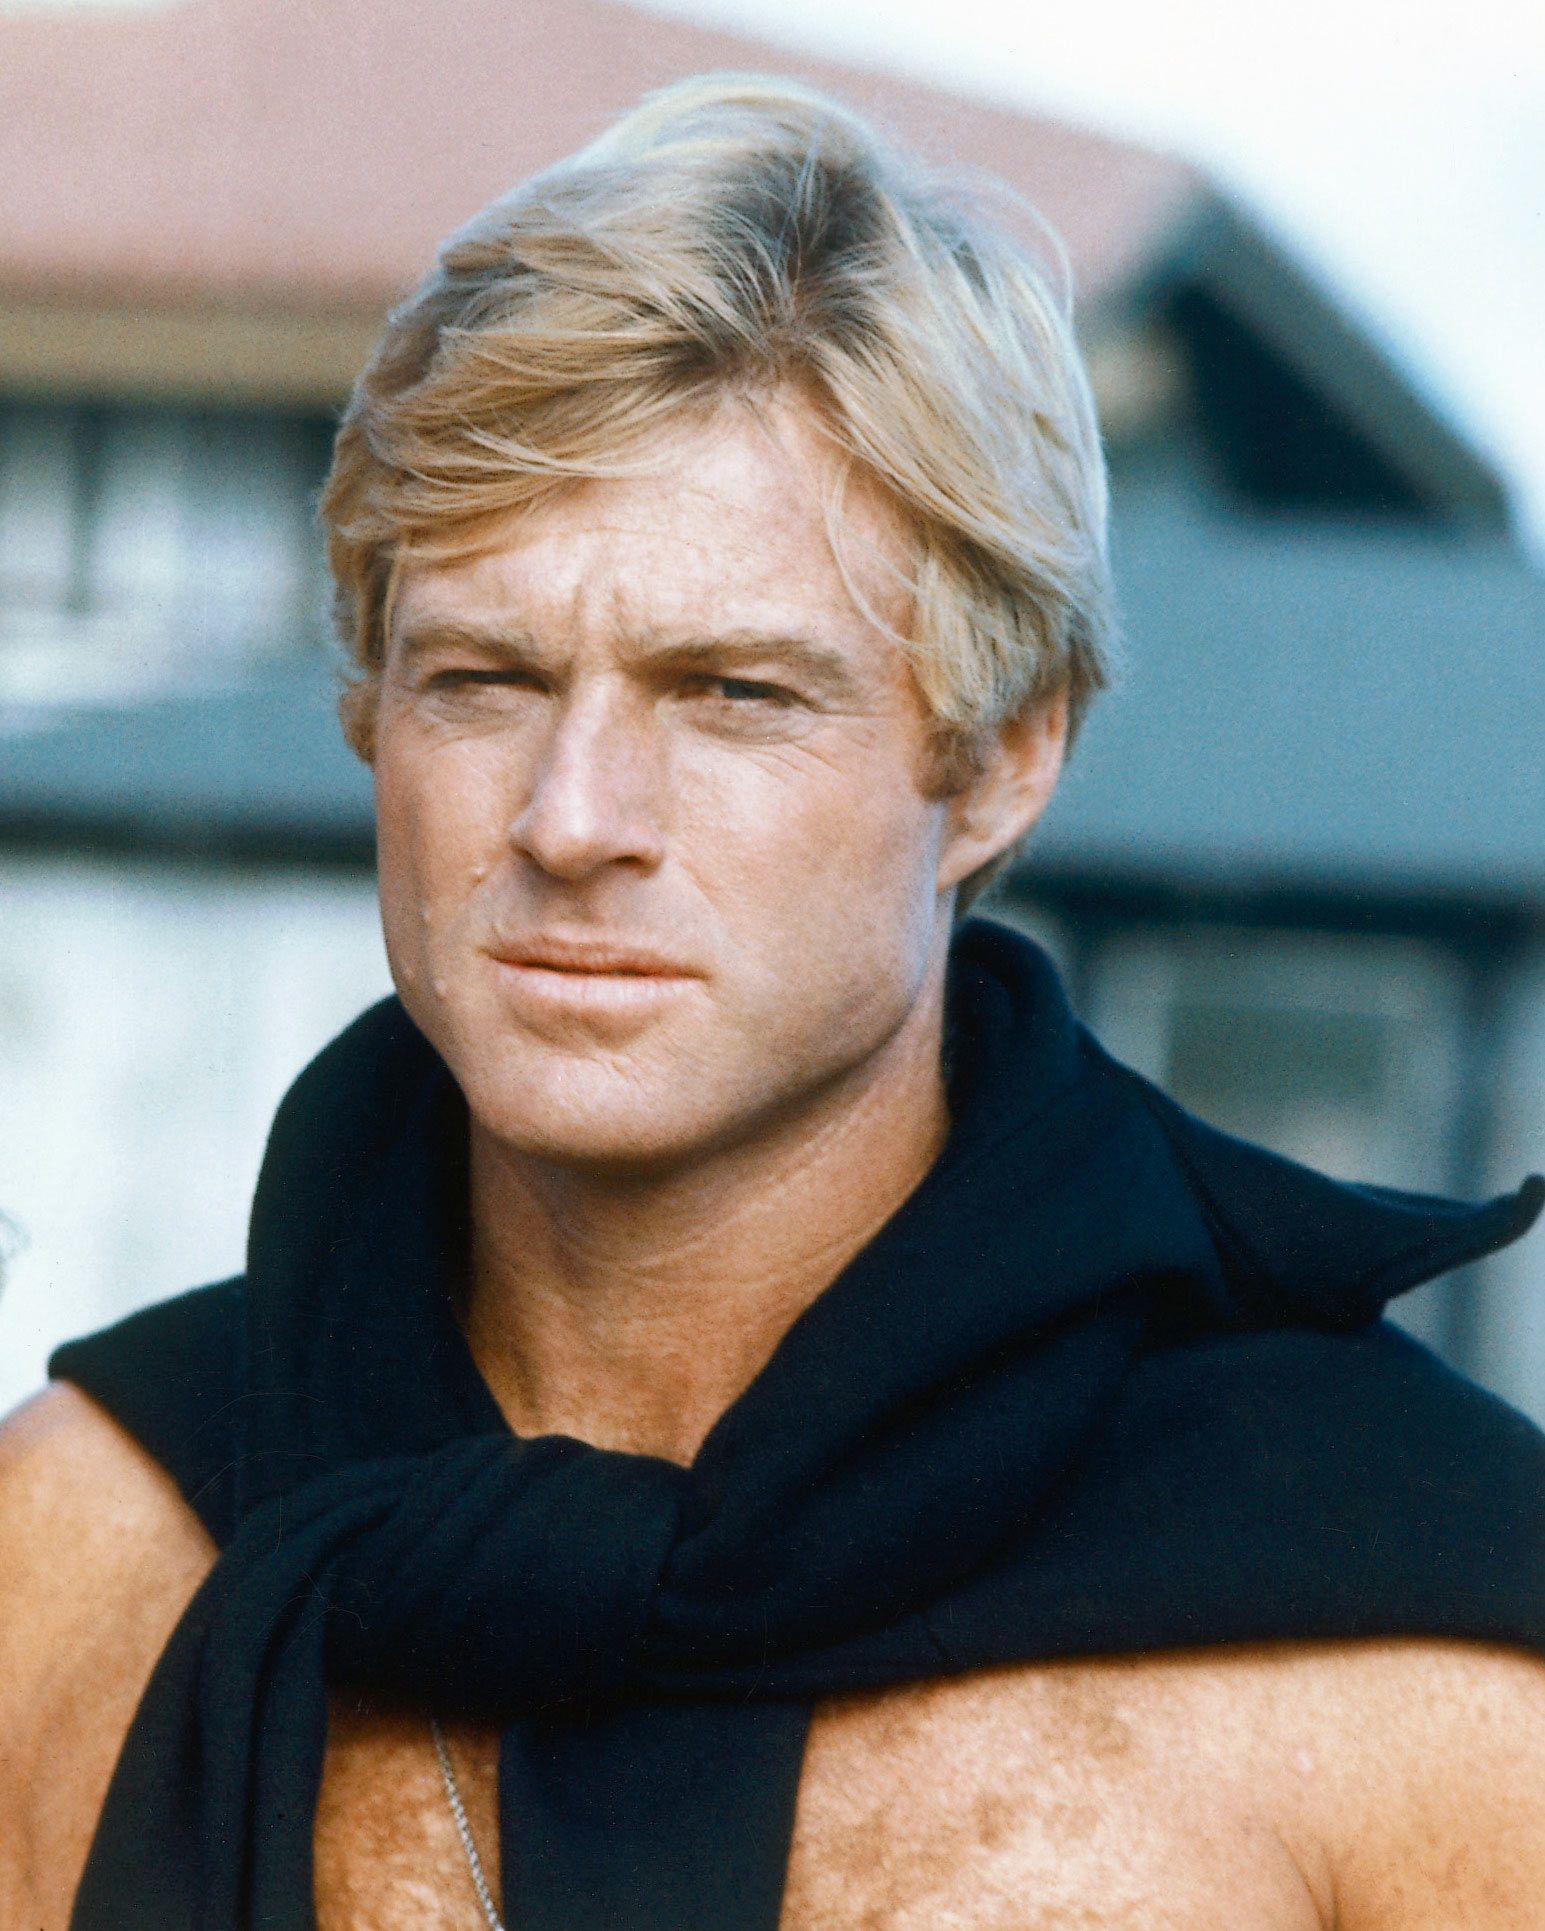 Extrêmement Robert Redford - Shirtless Hunks - The Cut OJ63